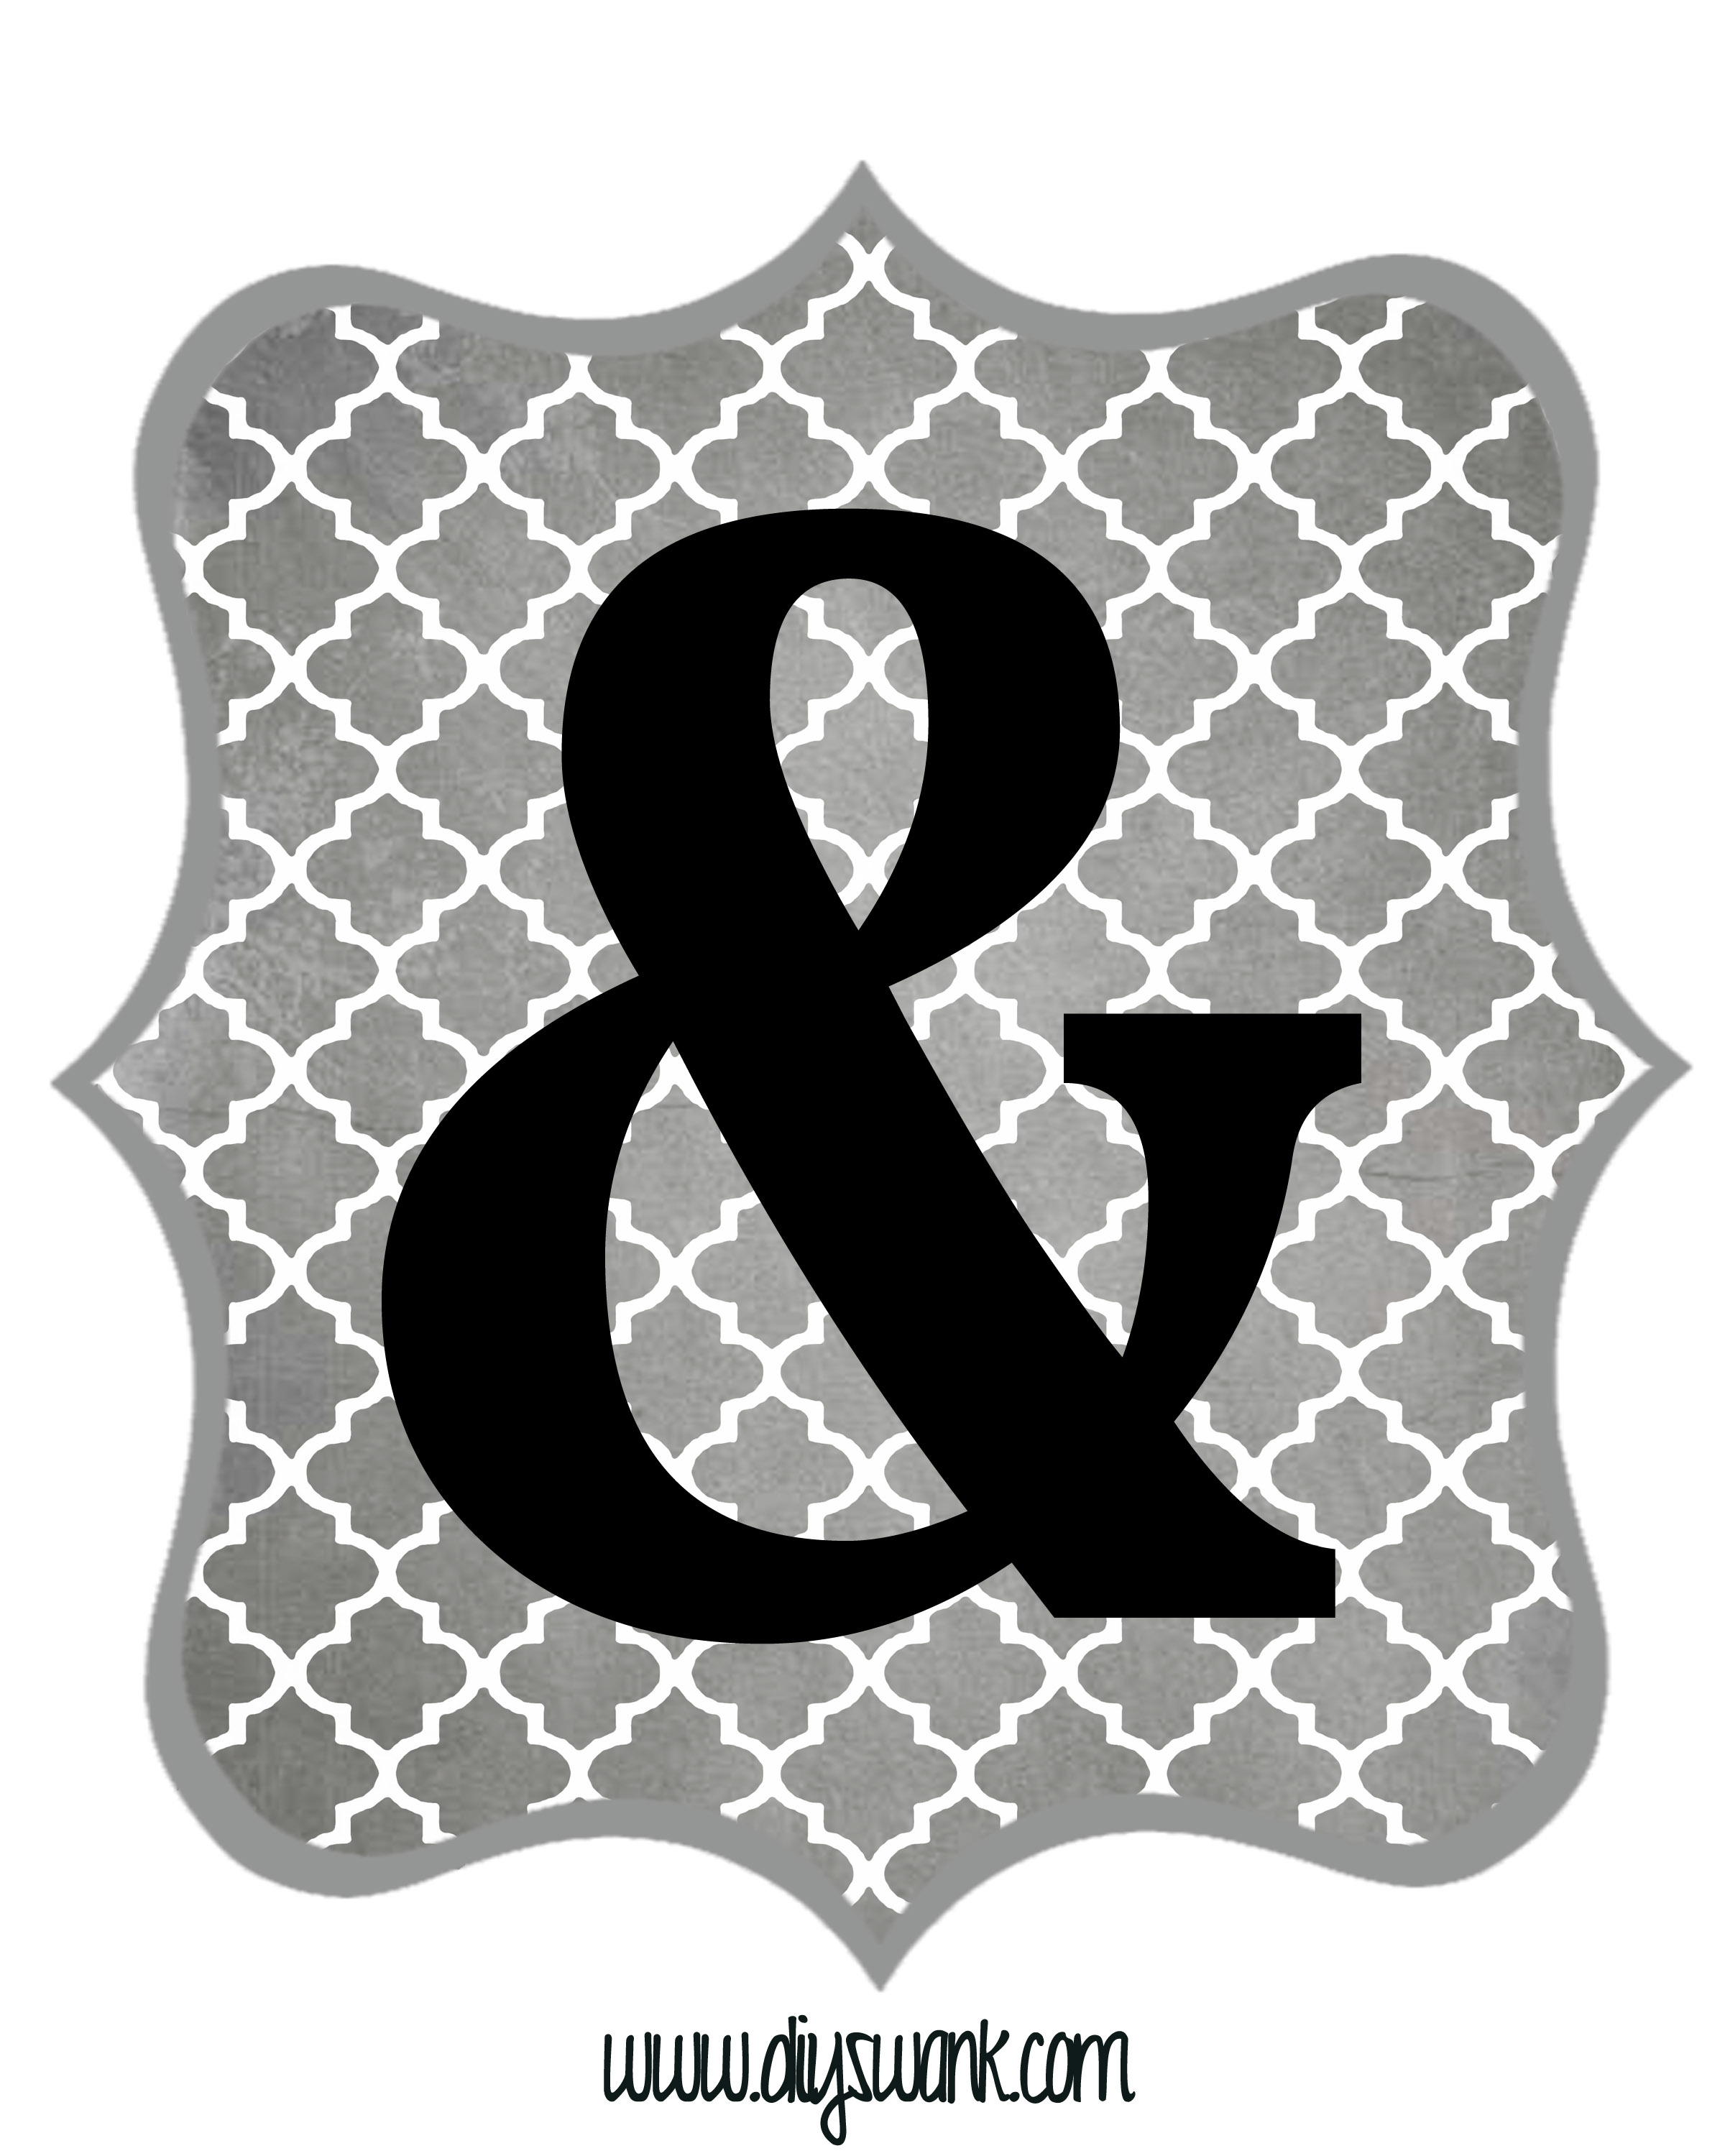 Free Printable Letters Gray And Black | Diy Swank - Diy Swank Free Printable Letters